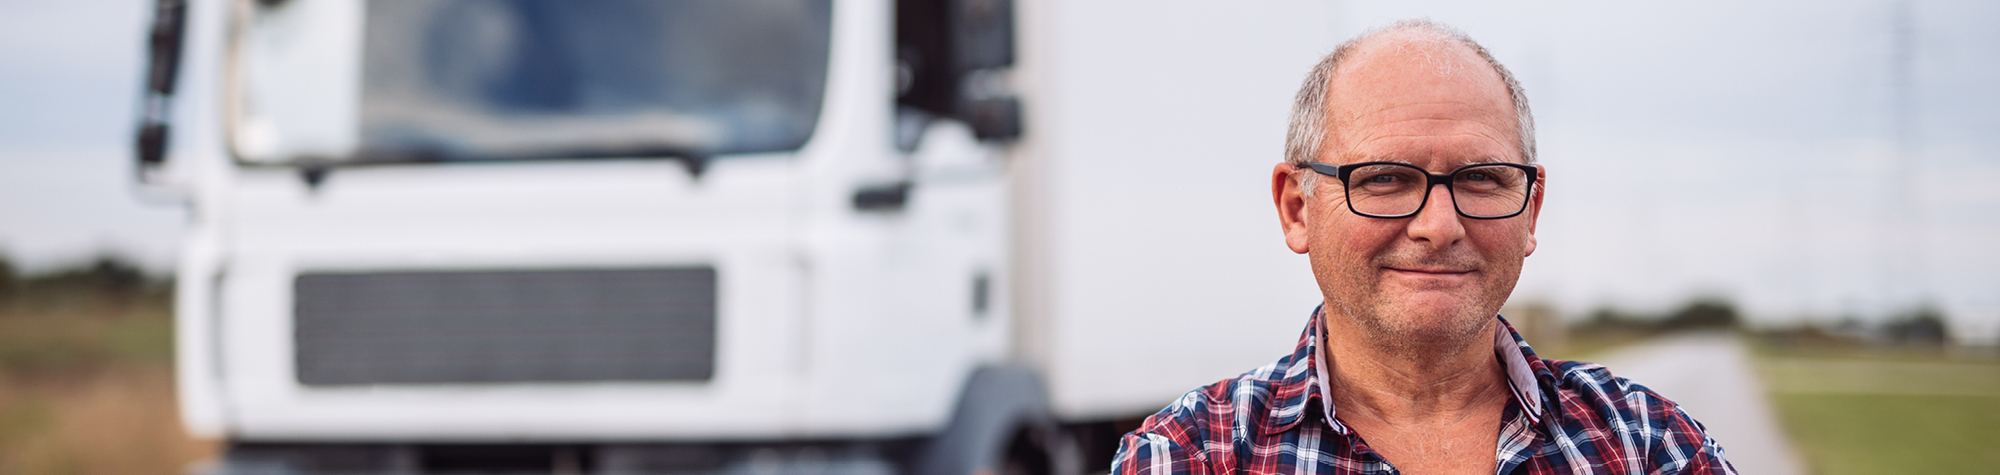 Search Consultancy driving jobs header image. Featuring a male driver smiling in front of a HGV.